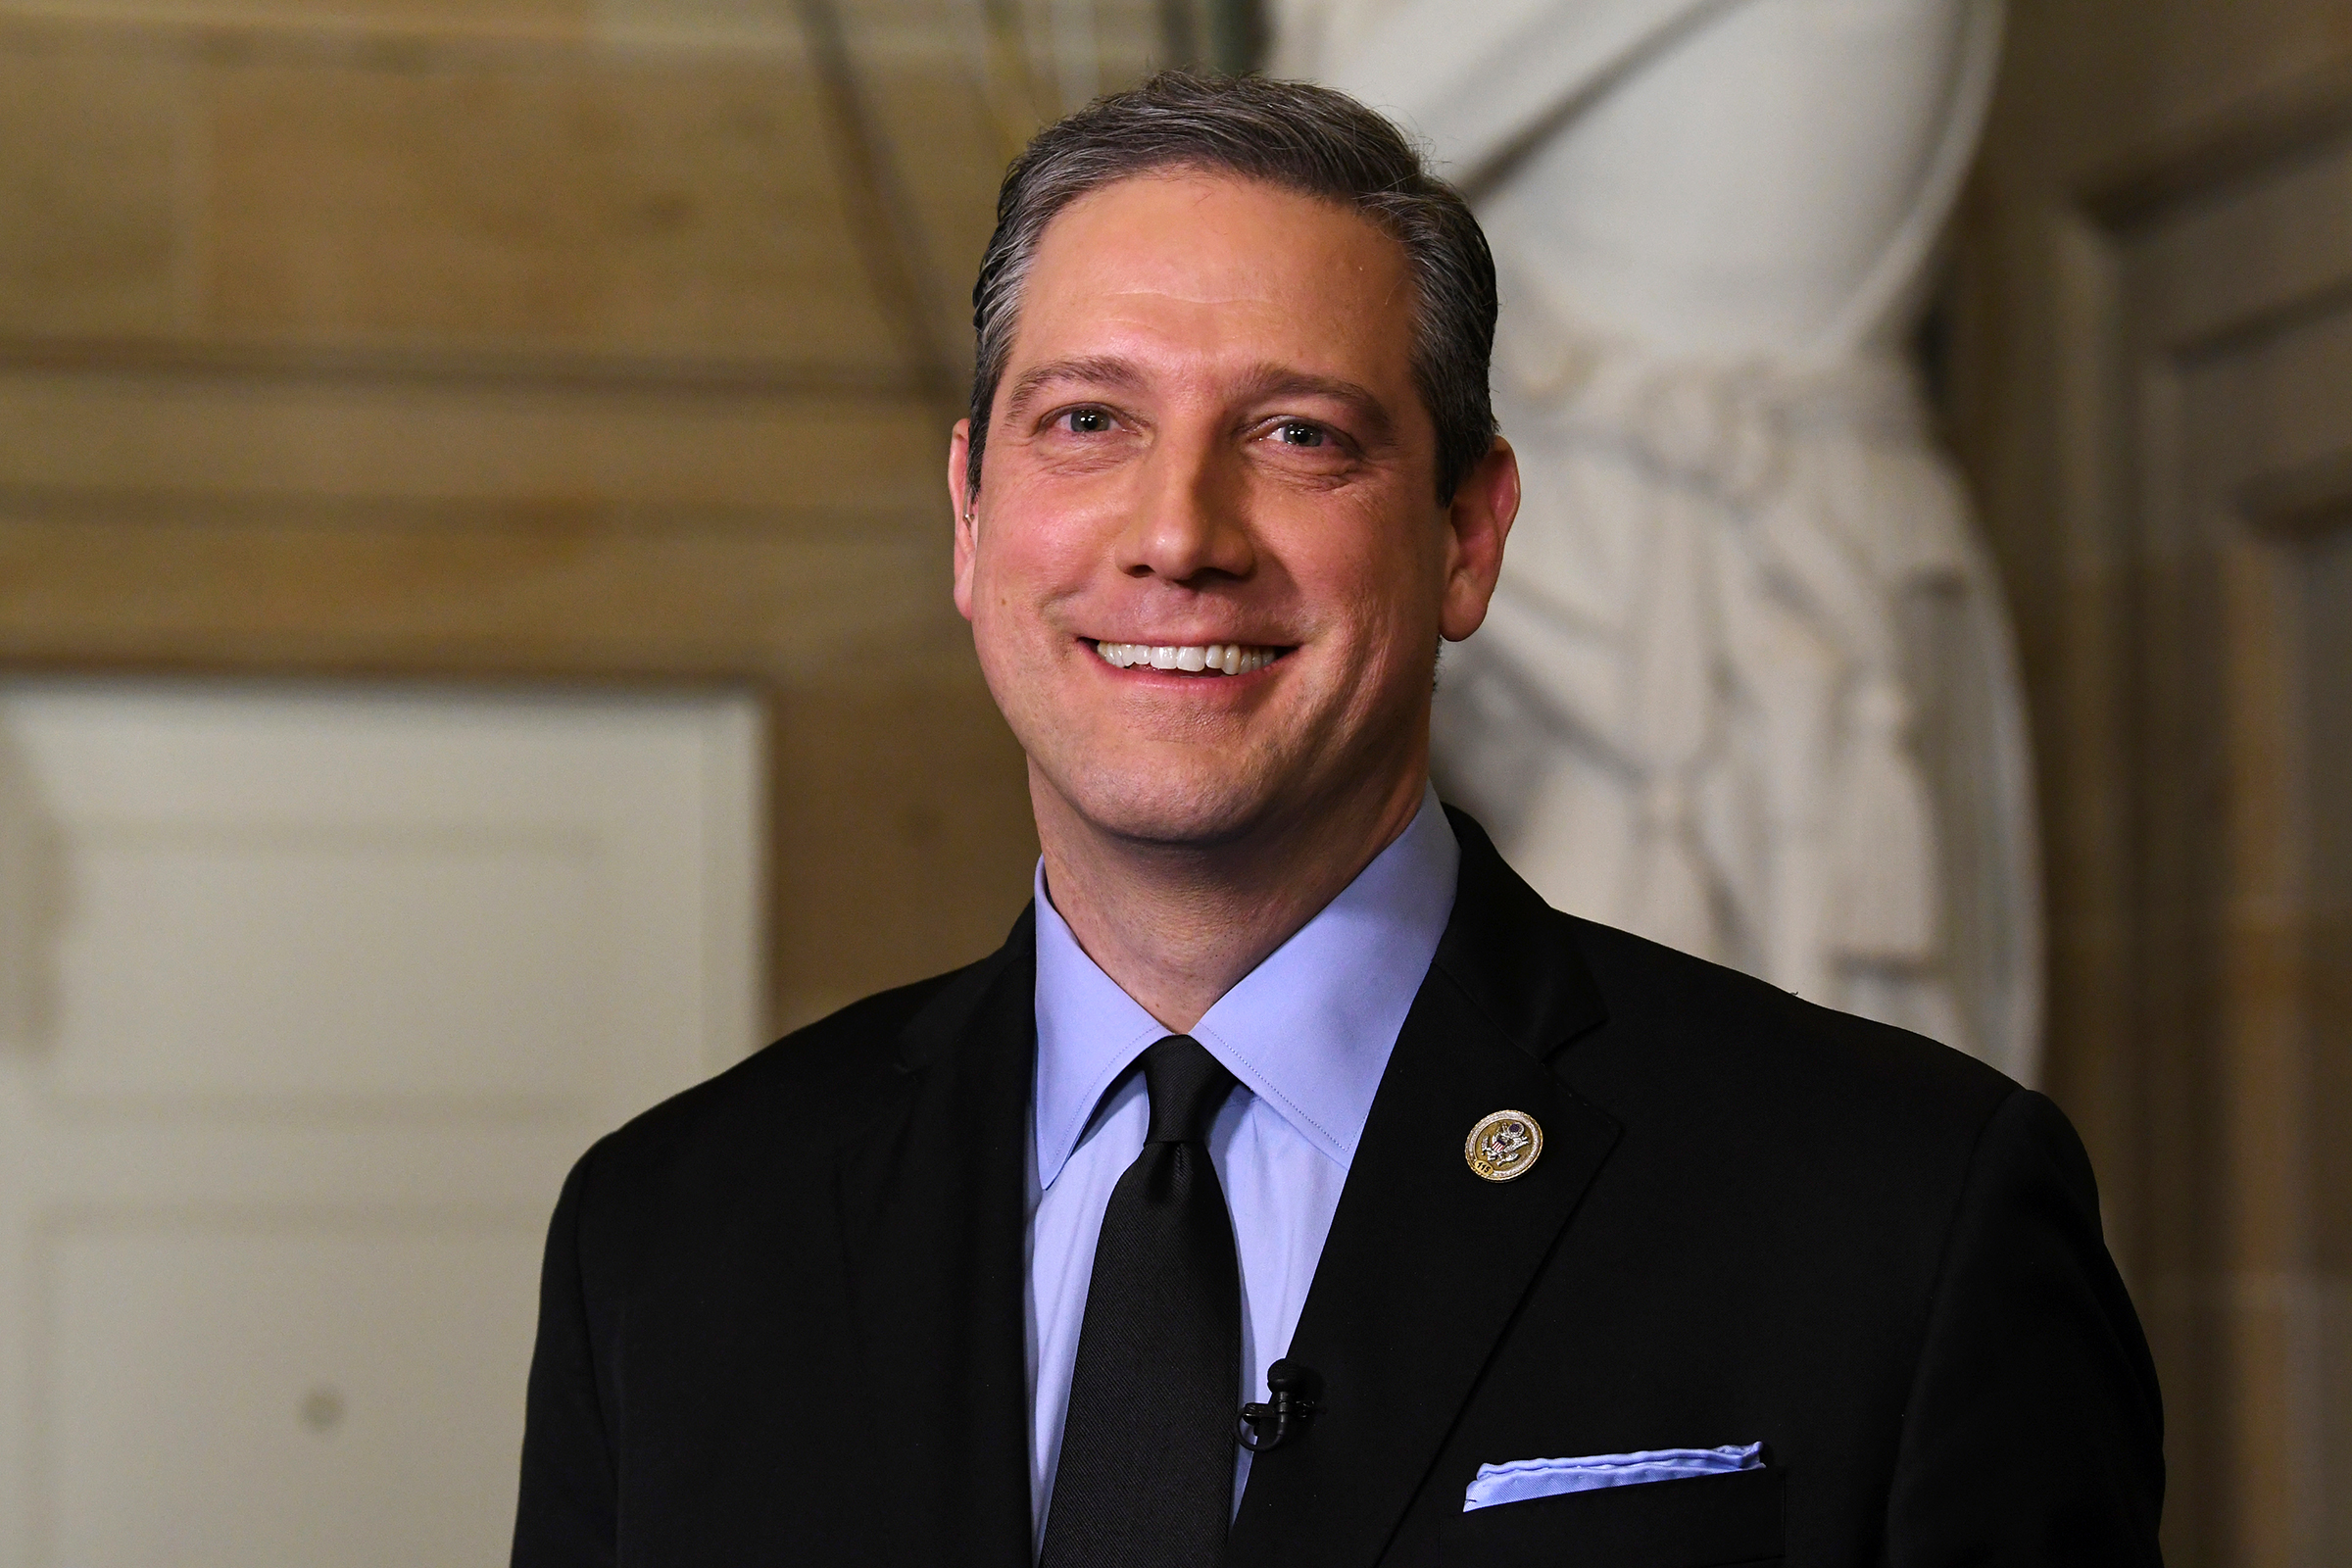 Tim Ryan Enters 2020 Race With Vision For Rural America